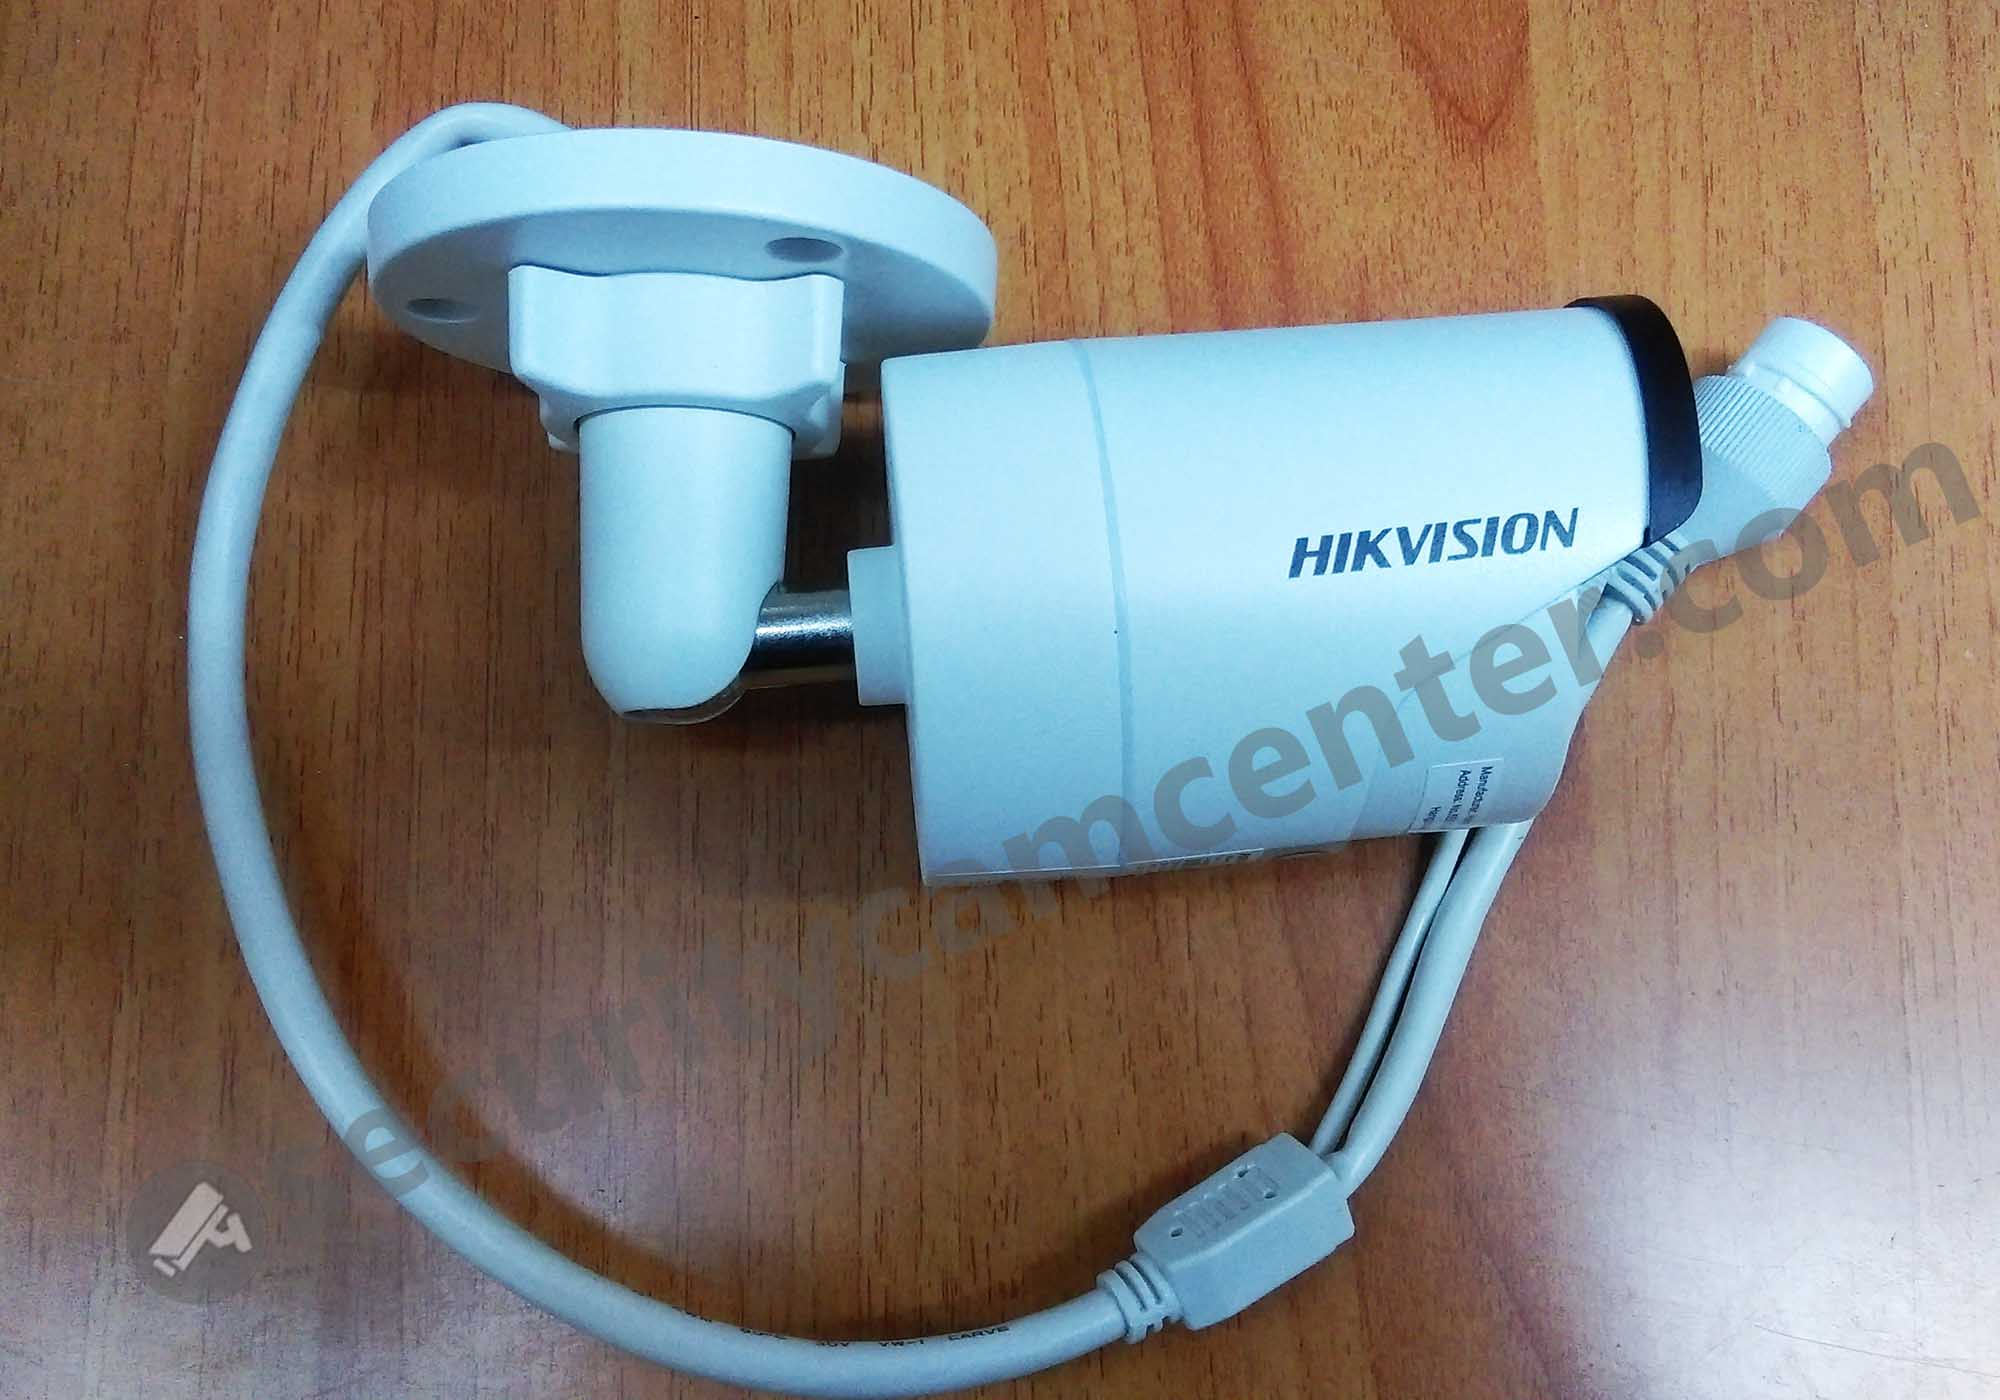 DS-2CD2042WD-I mini bullet camera. The size is relatively small.